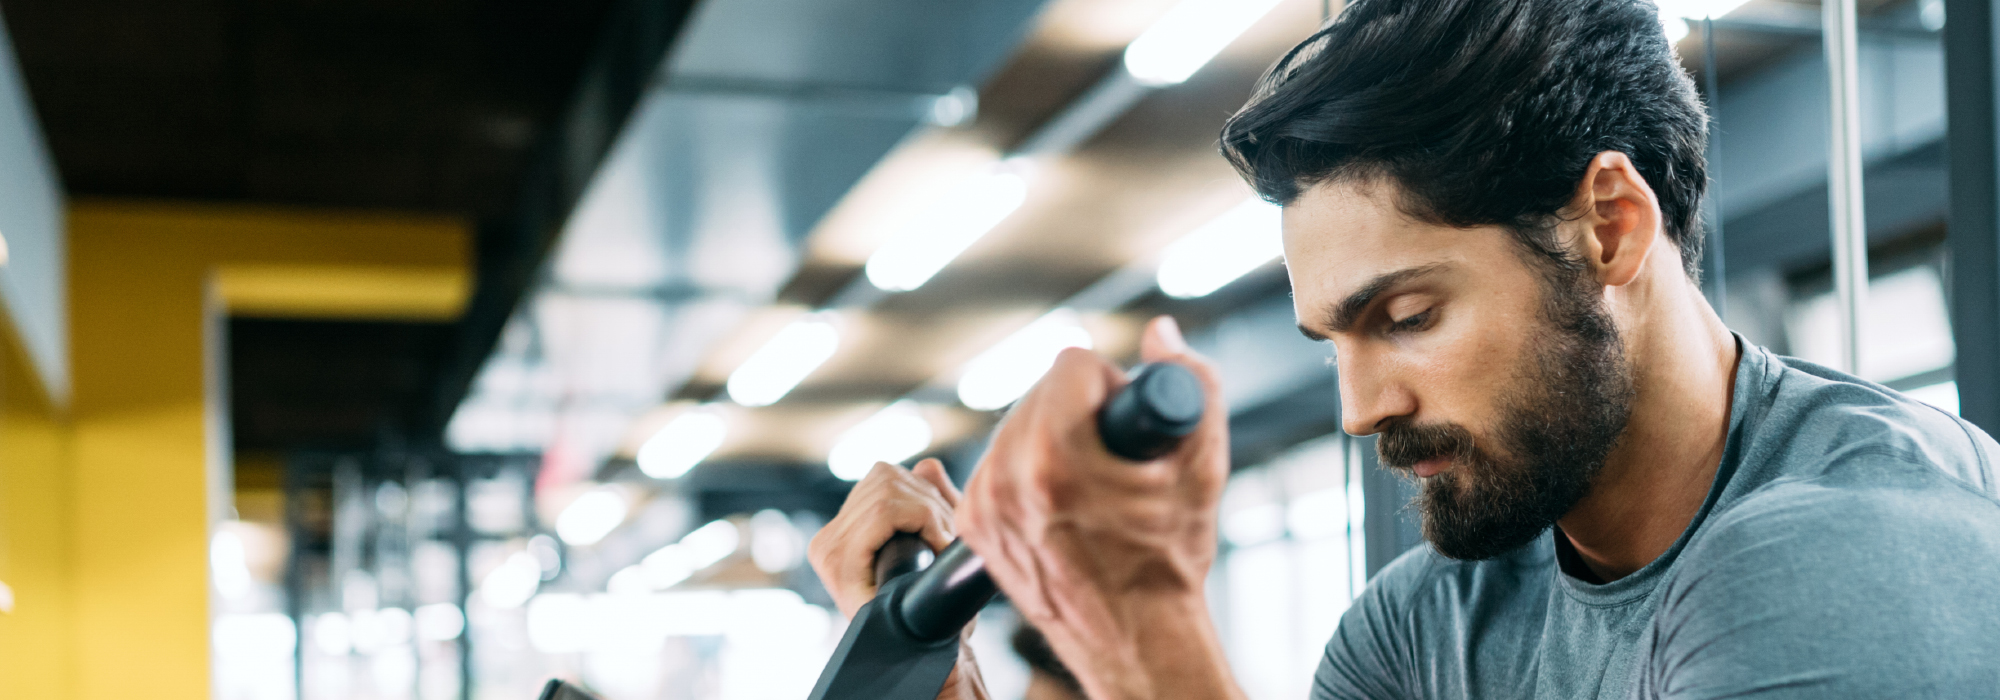 Tips to Stay Healthy At the Gym